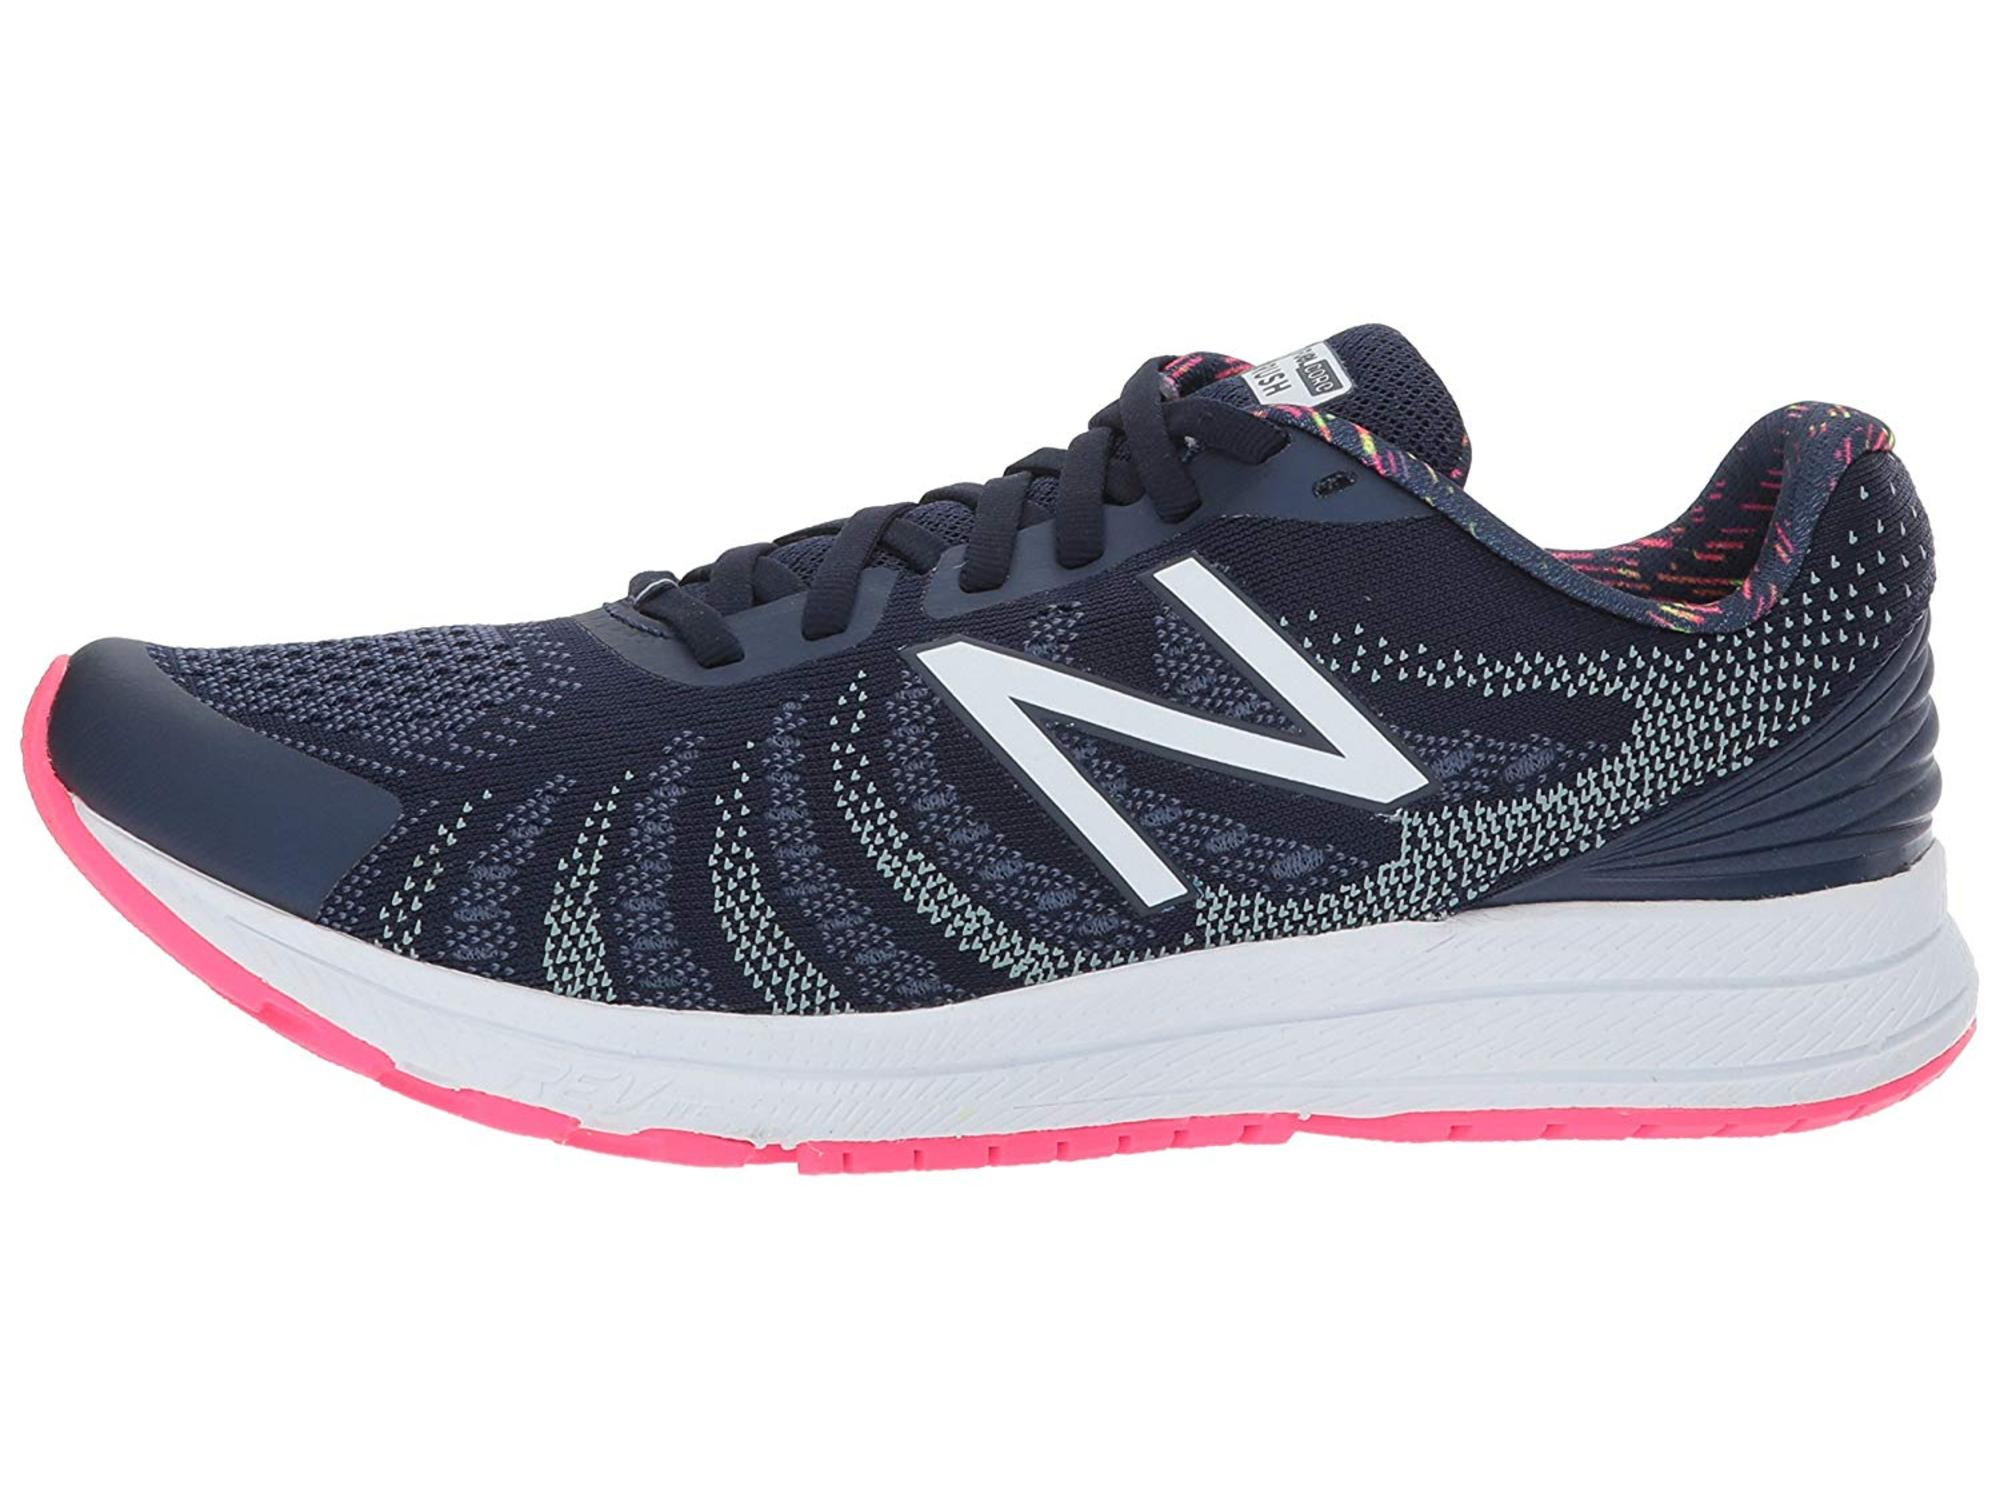 New Balance Womens Rushv3 Low Top Lace Up Running Sneaker by New Balance